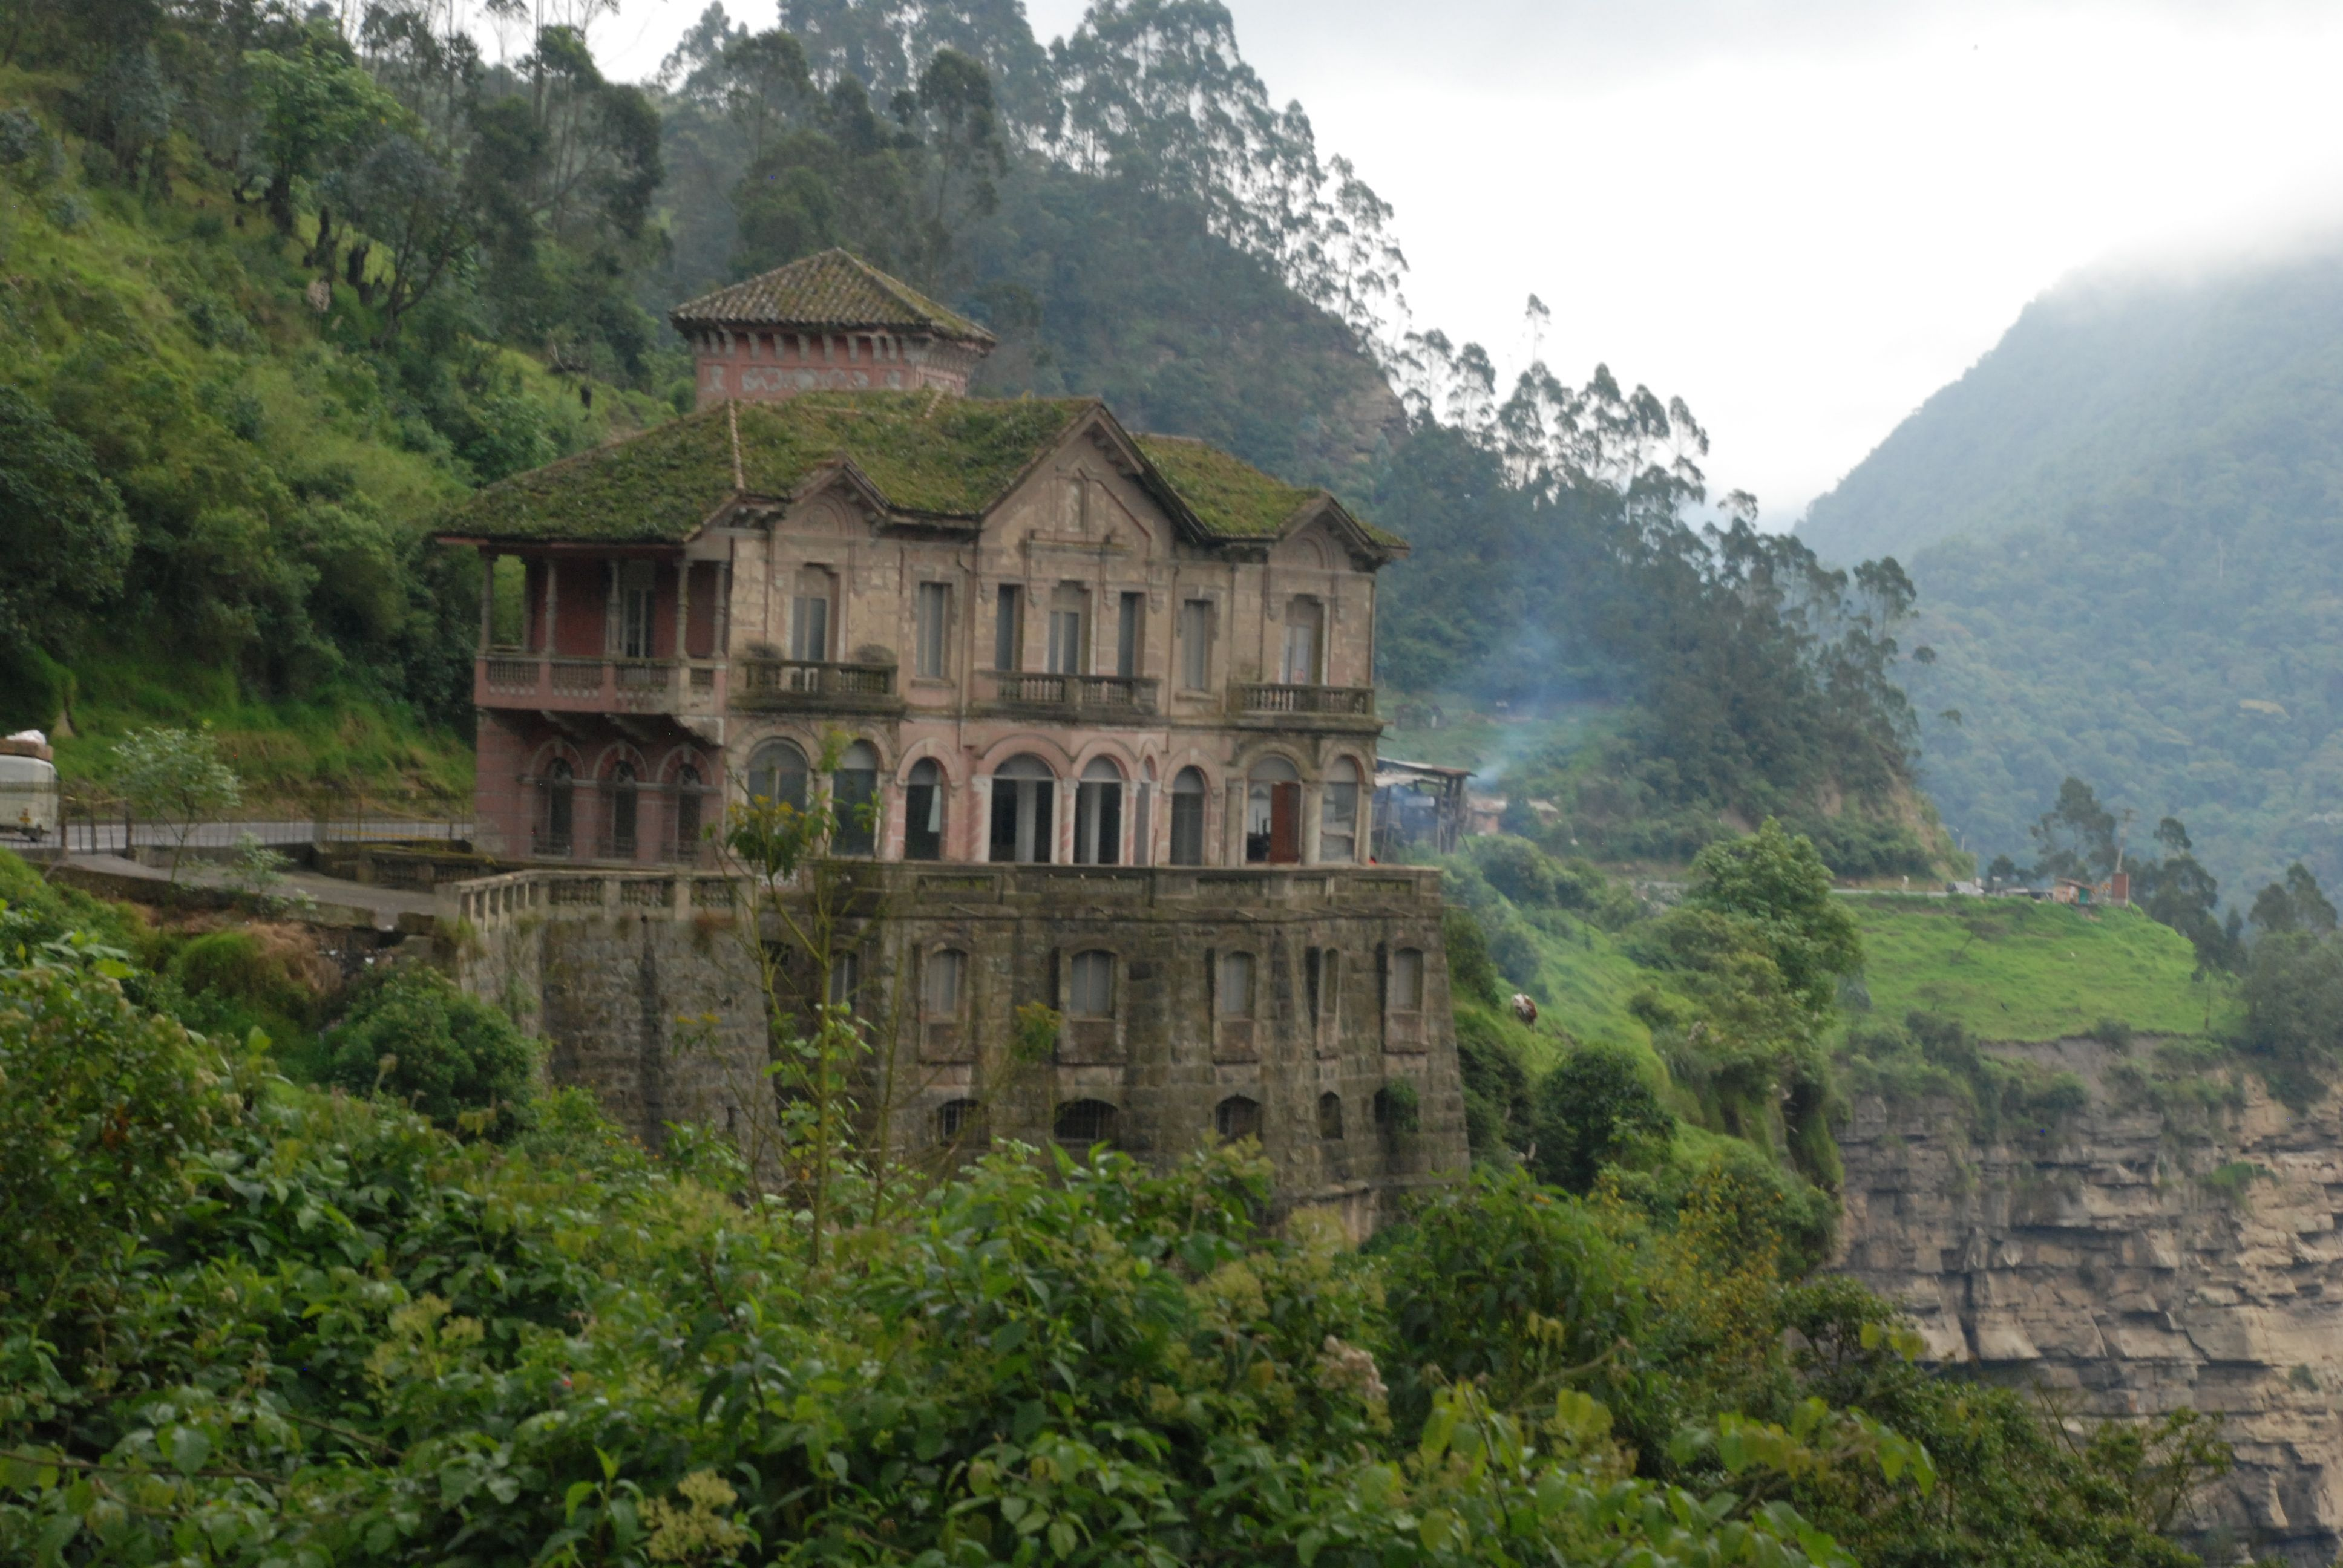 Hovering over the Lake of the Dead is the notorious hotel in El Salto, Colombia.